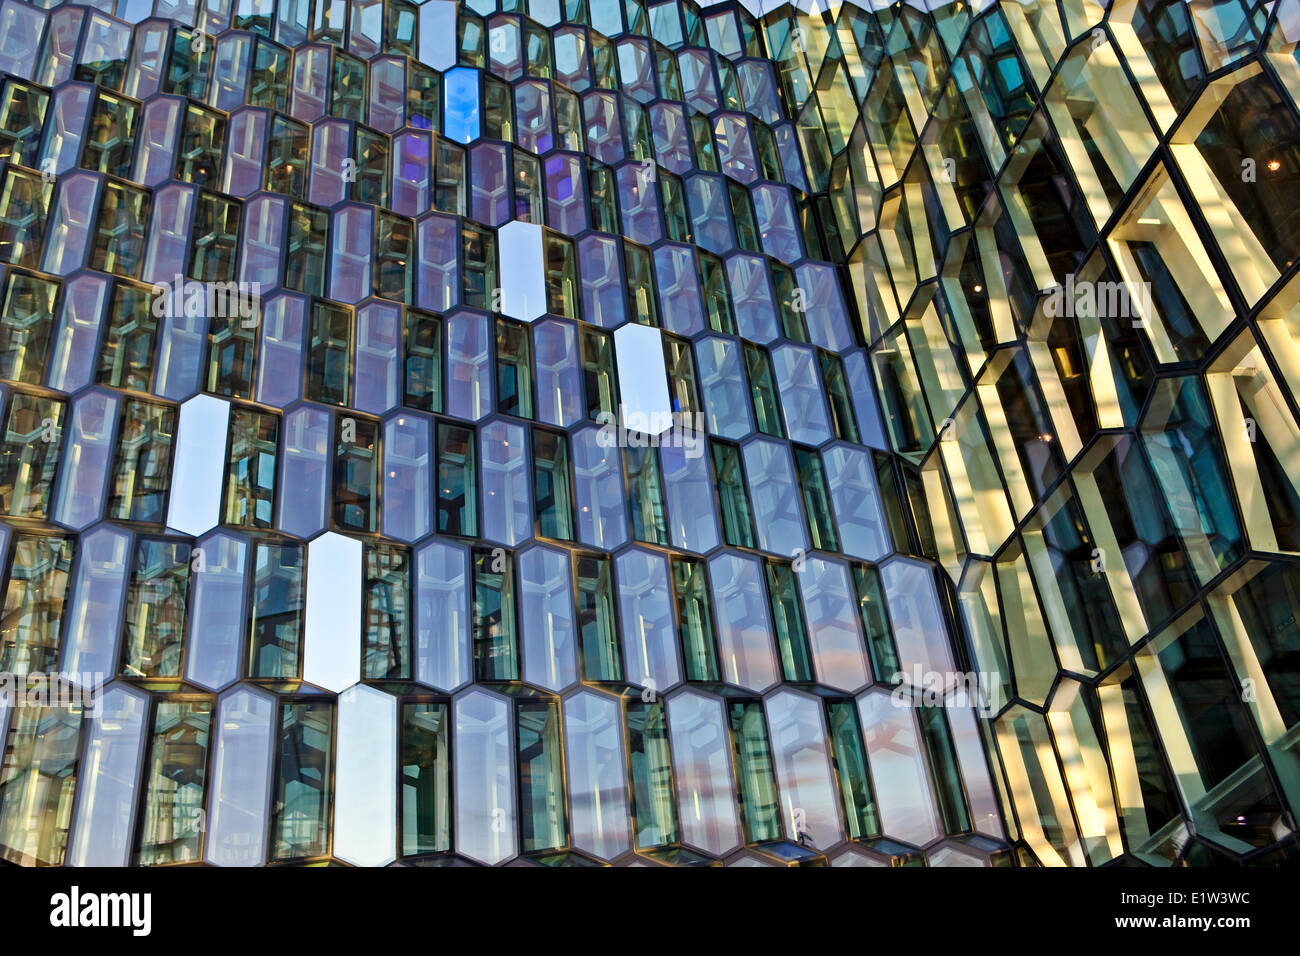 HARPA, the new Concert/Opera/Convention Centre, Reykjavik, Iceland - Stock Image